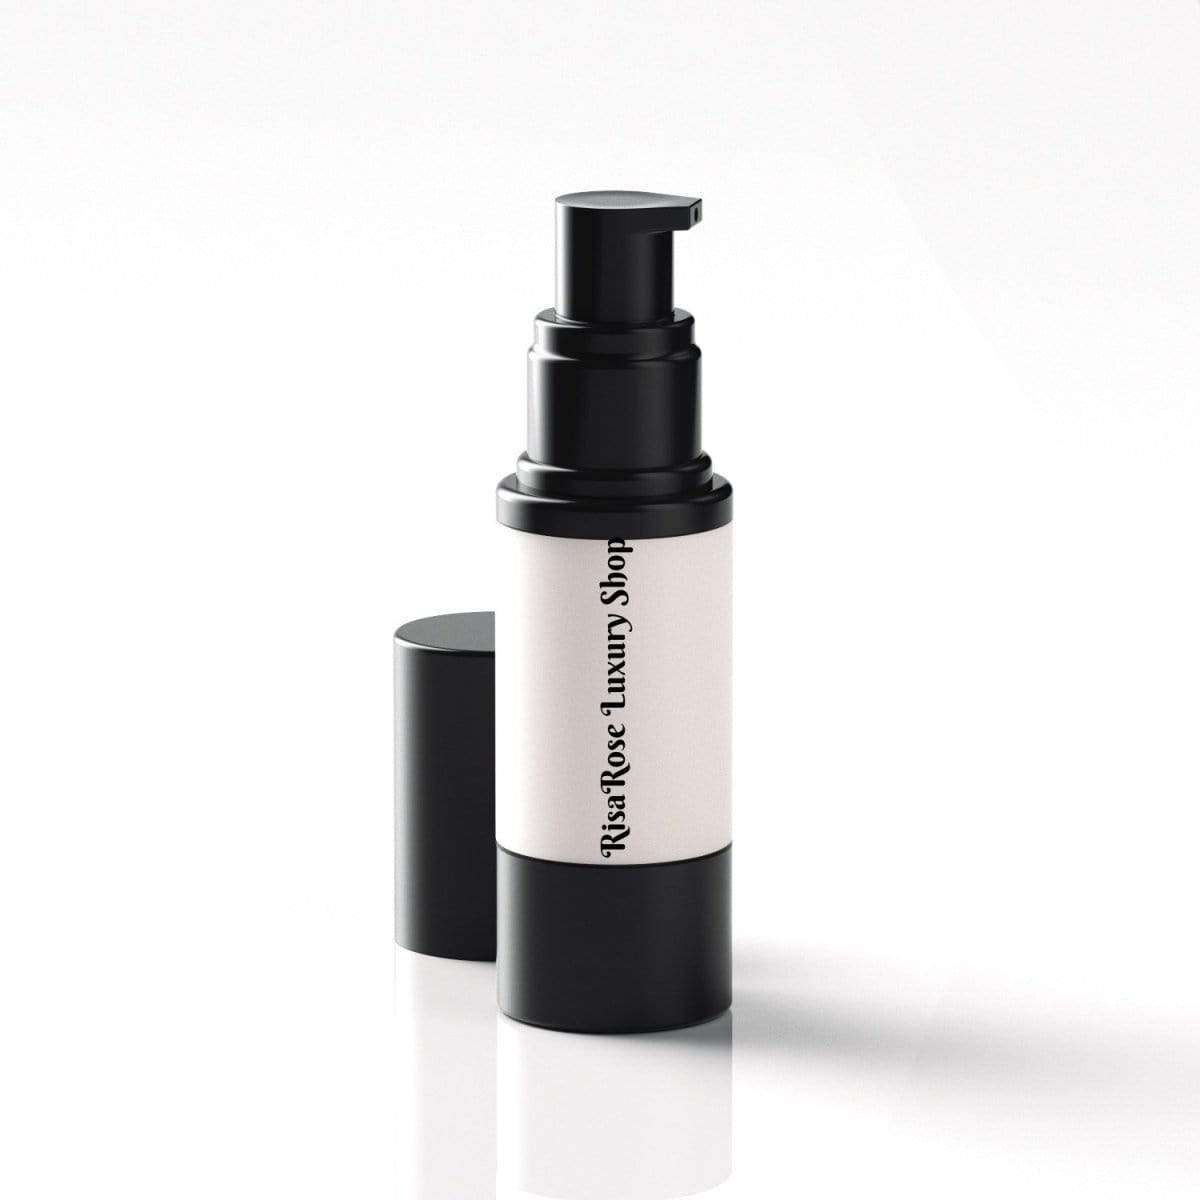 Water based primer - RisaRose Luxury Shop